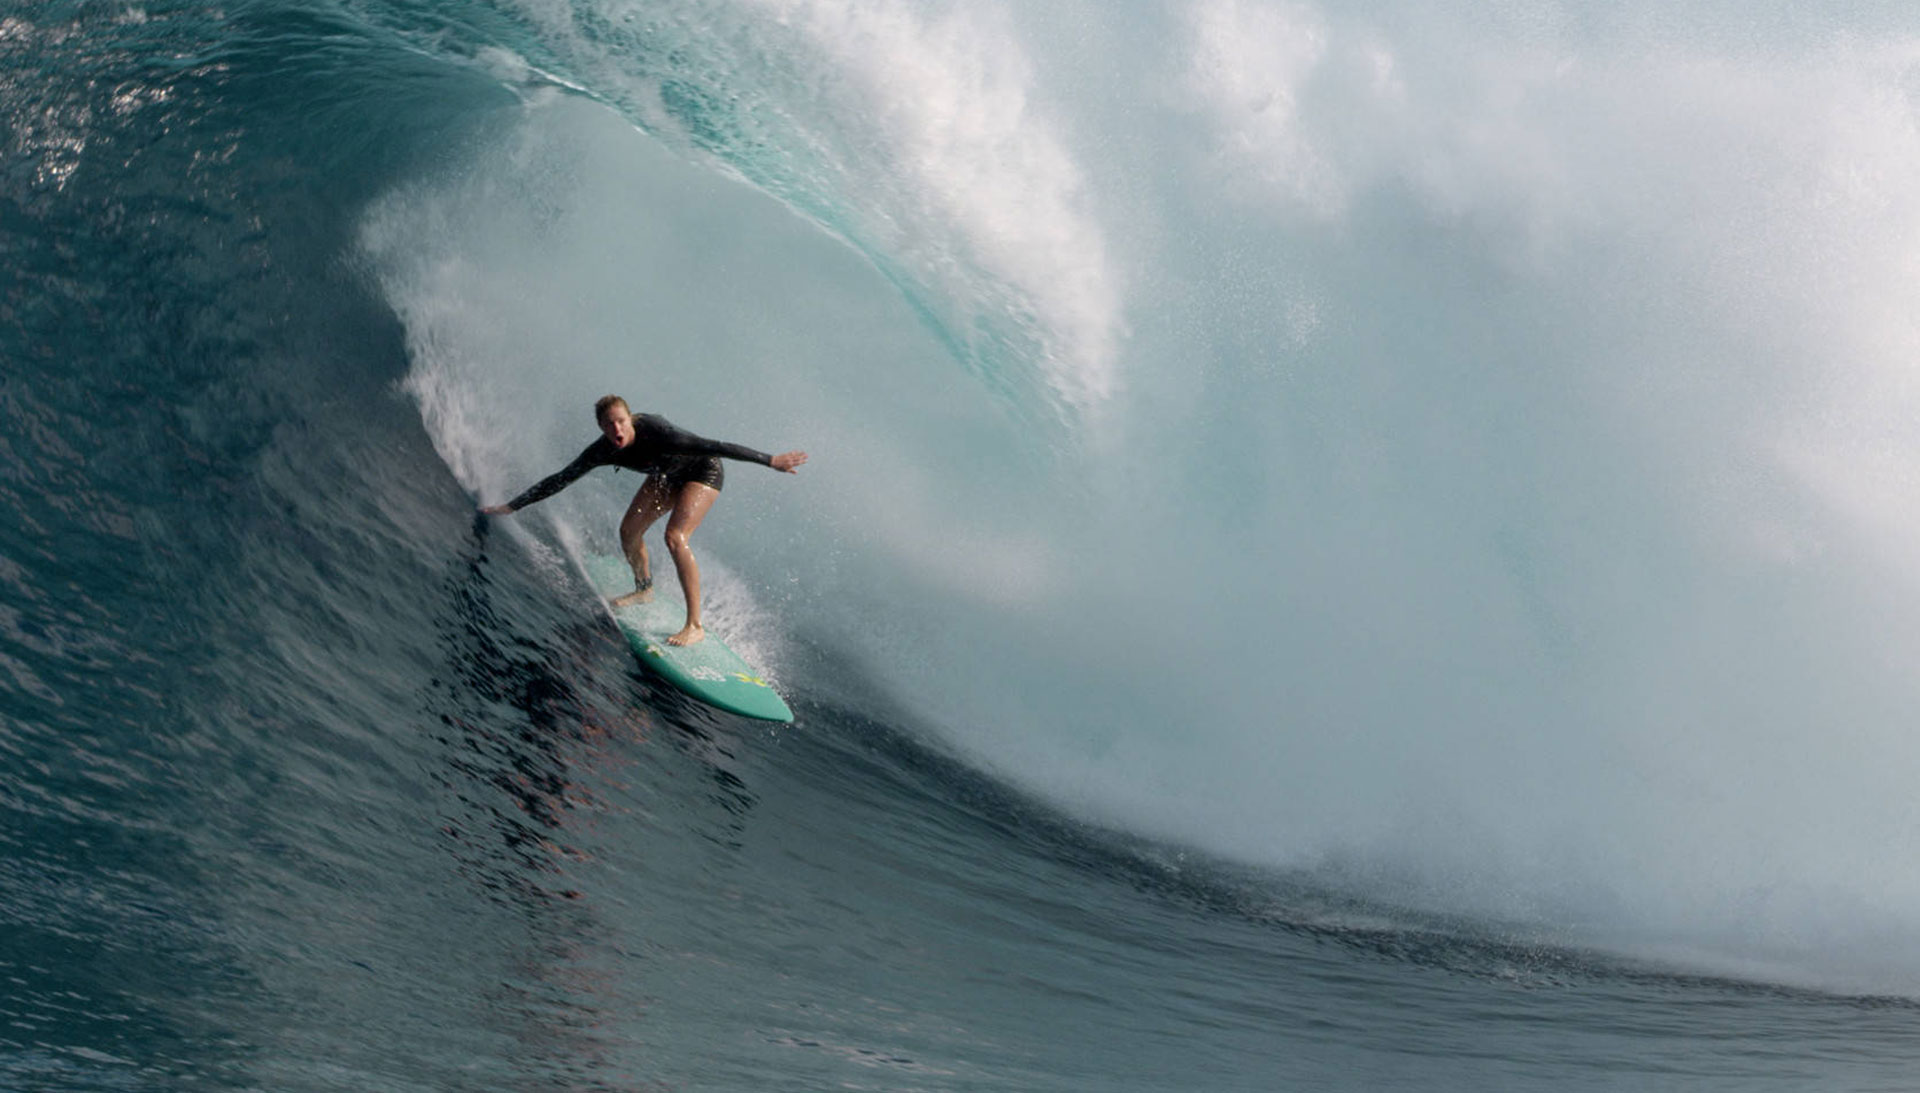 Paige Alms gets barreled at the Jaws surf break in Maui, Hawaii, a clip featured in the documentary 'The Wave I Ride.'